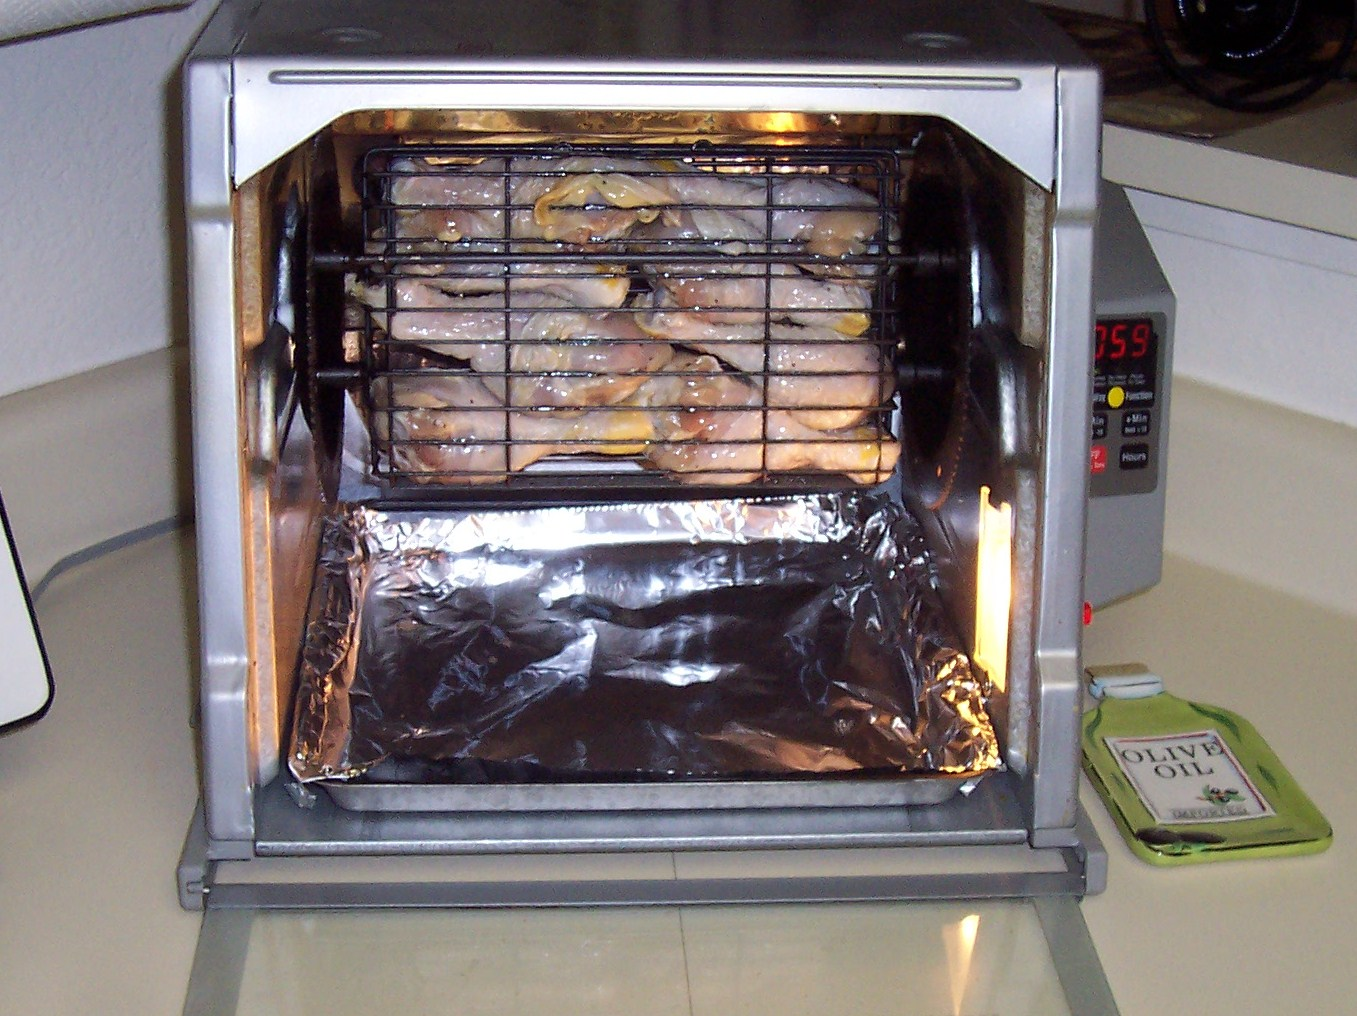 Bone In Center Cut Pork Roast On Ronco Rotisserie Oster Carousel Rotisserie Wolfgang Puck